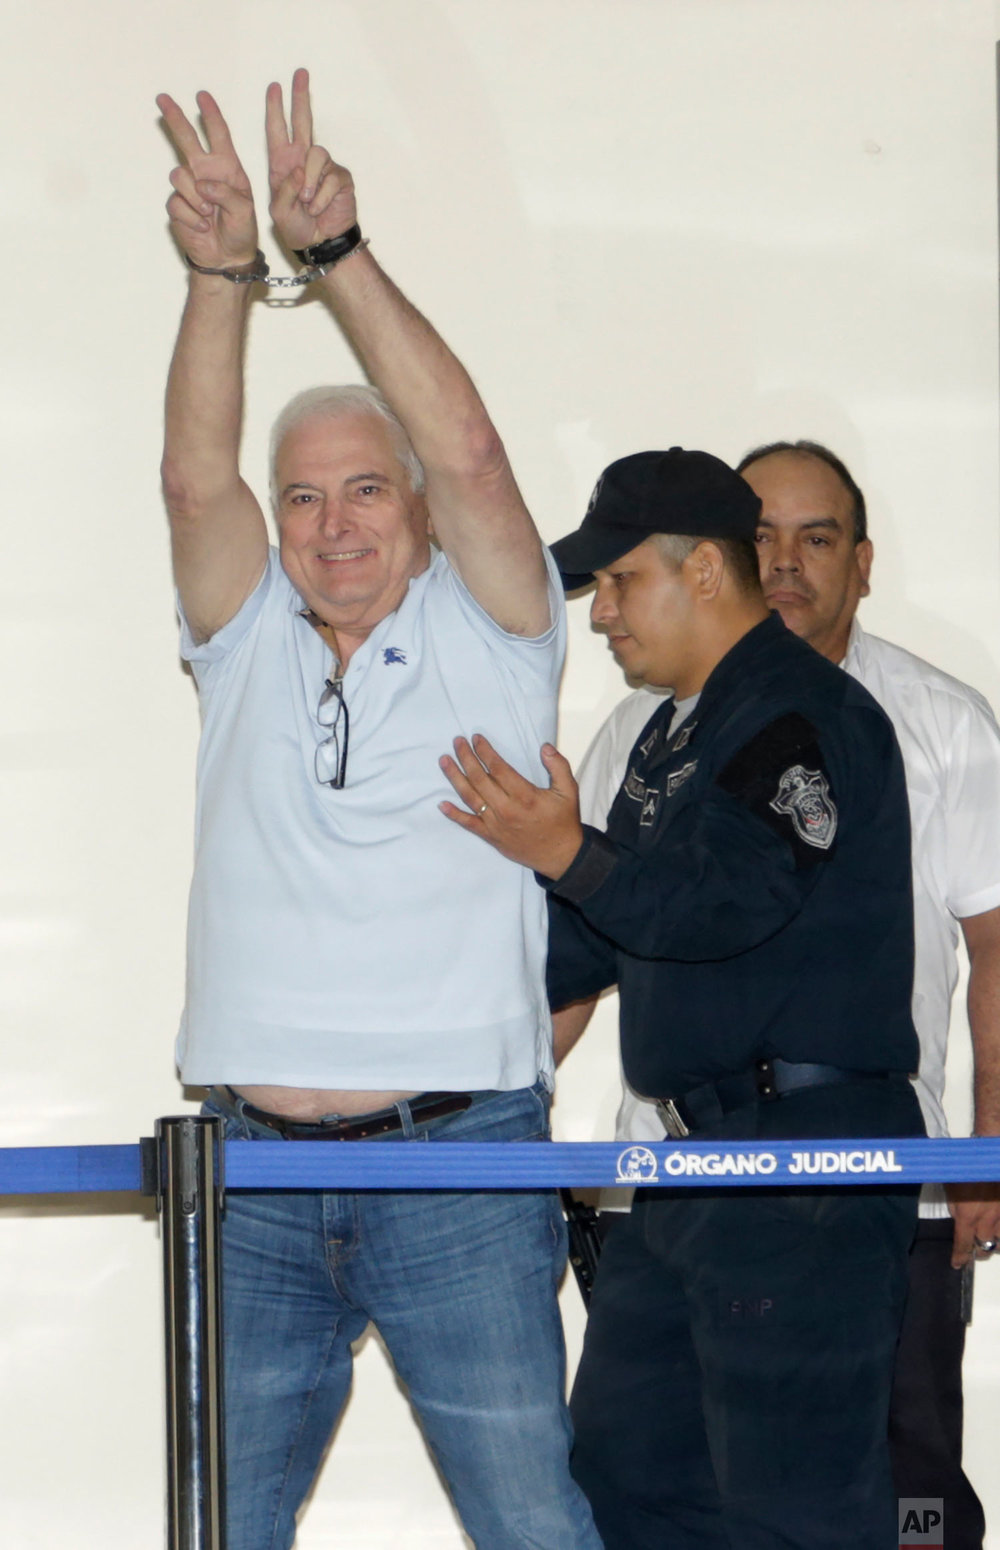 Former Panamanian President Ricardo Martinelli gestures victory from his handcuffs while escorted away from his hearing at the Supreme Court in Panama City, June 11, 2018. Martinelli returned to Panama to face political espionage and embezzlement charges after being extradited from the U.S. (AP Photo/Arnulfo Franco)